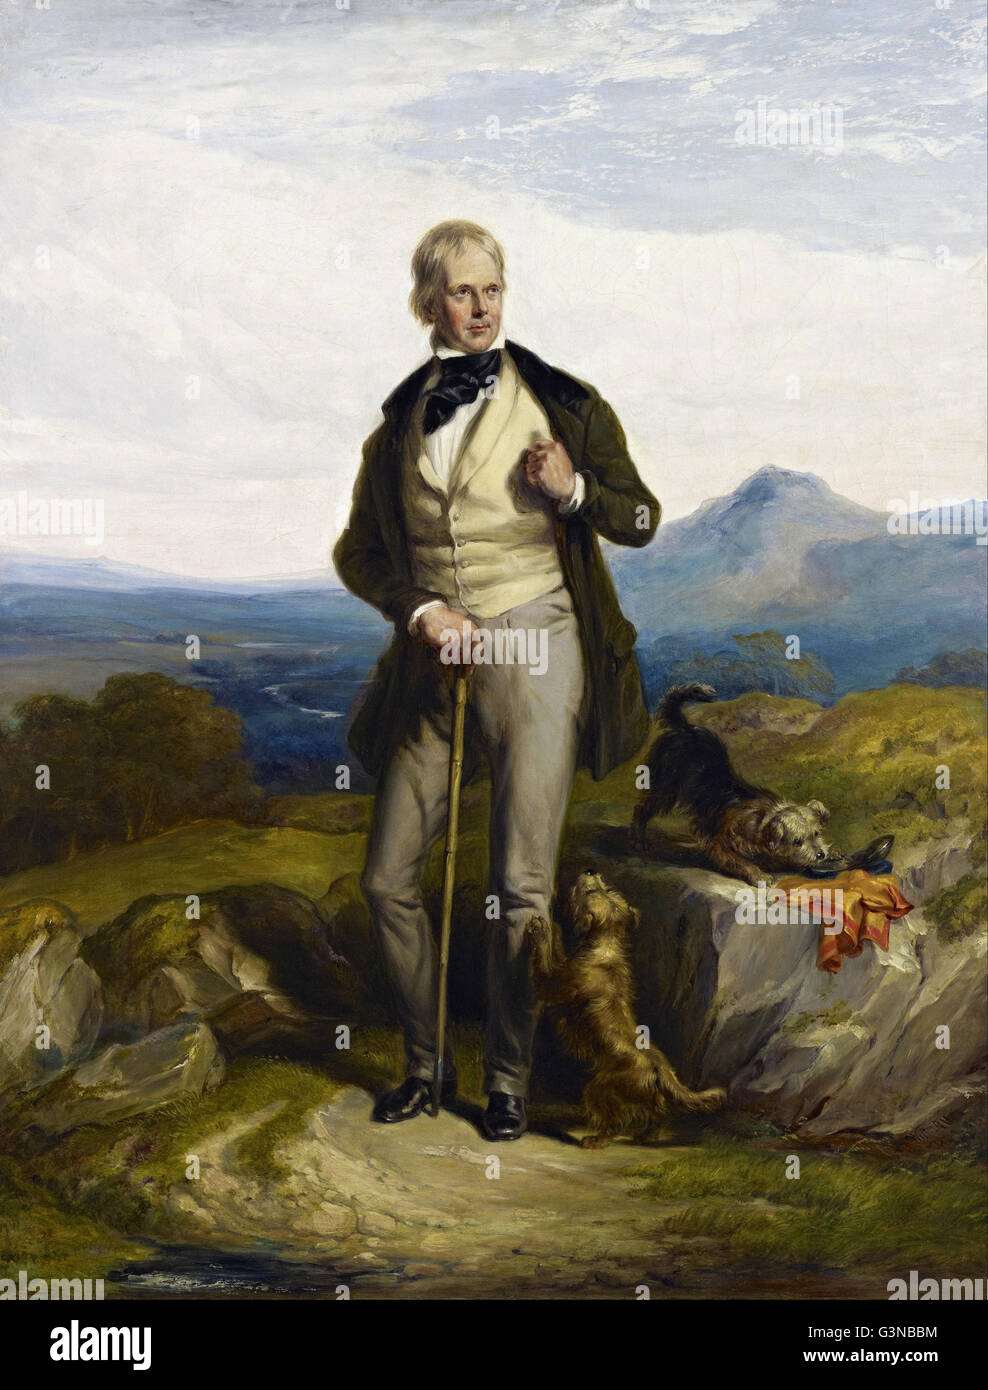 Sir William Allan - Sir Walter Scott, 1771 - 1832. Novelist and poet - Stock Image